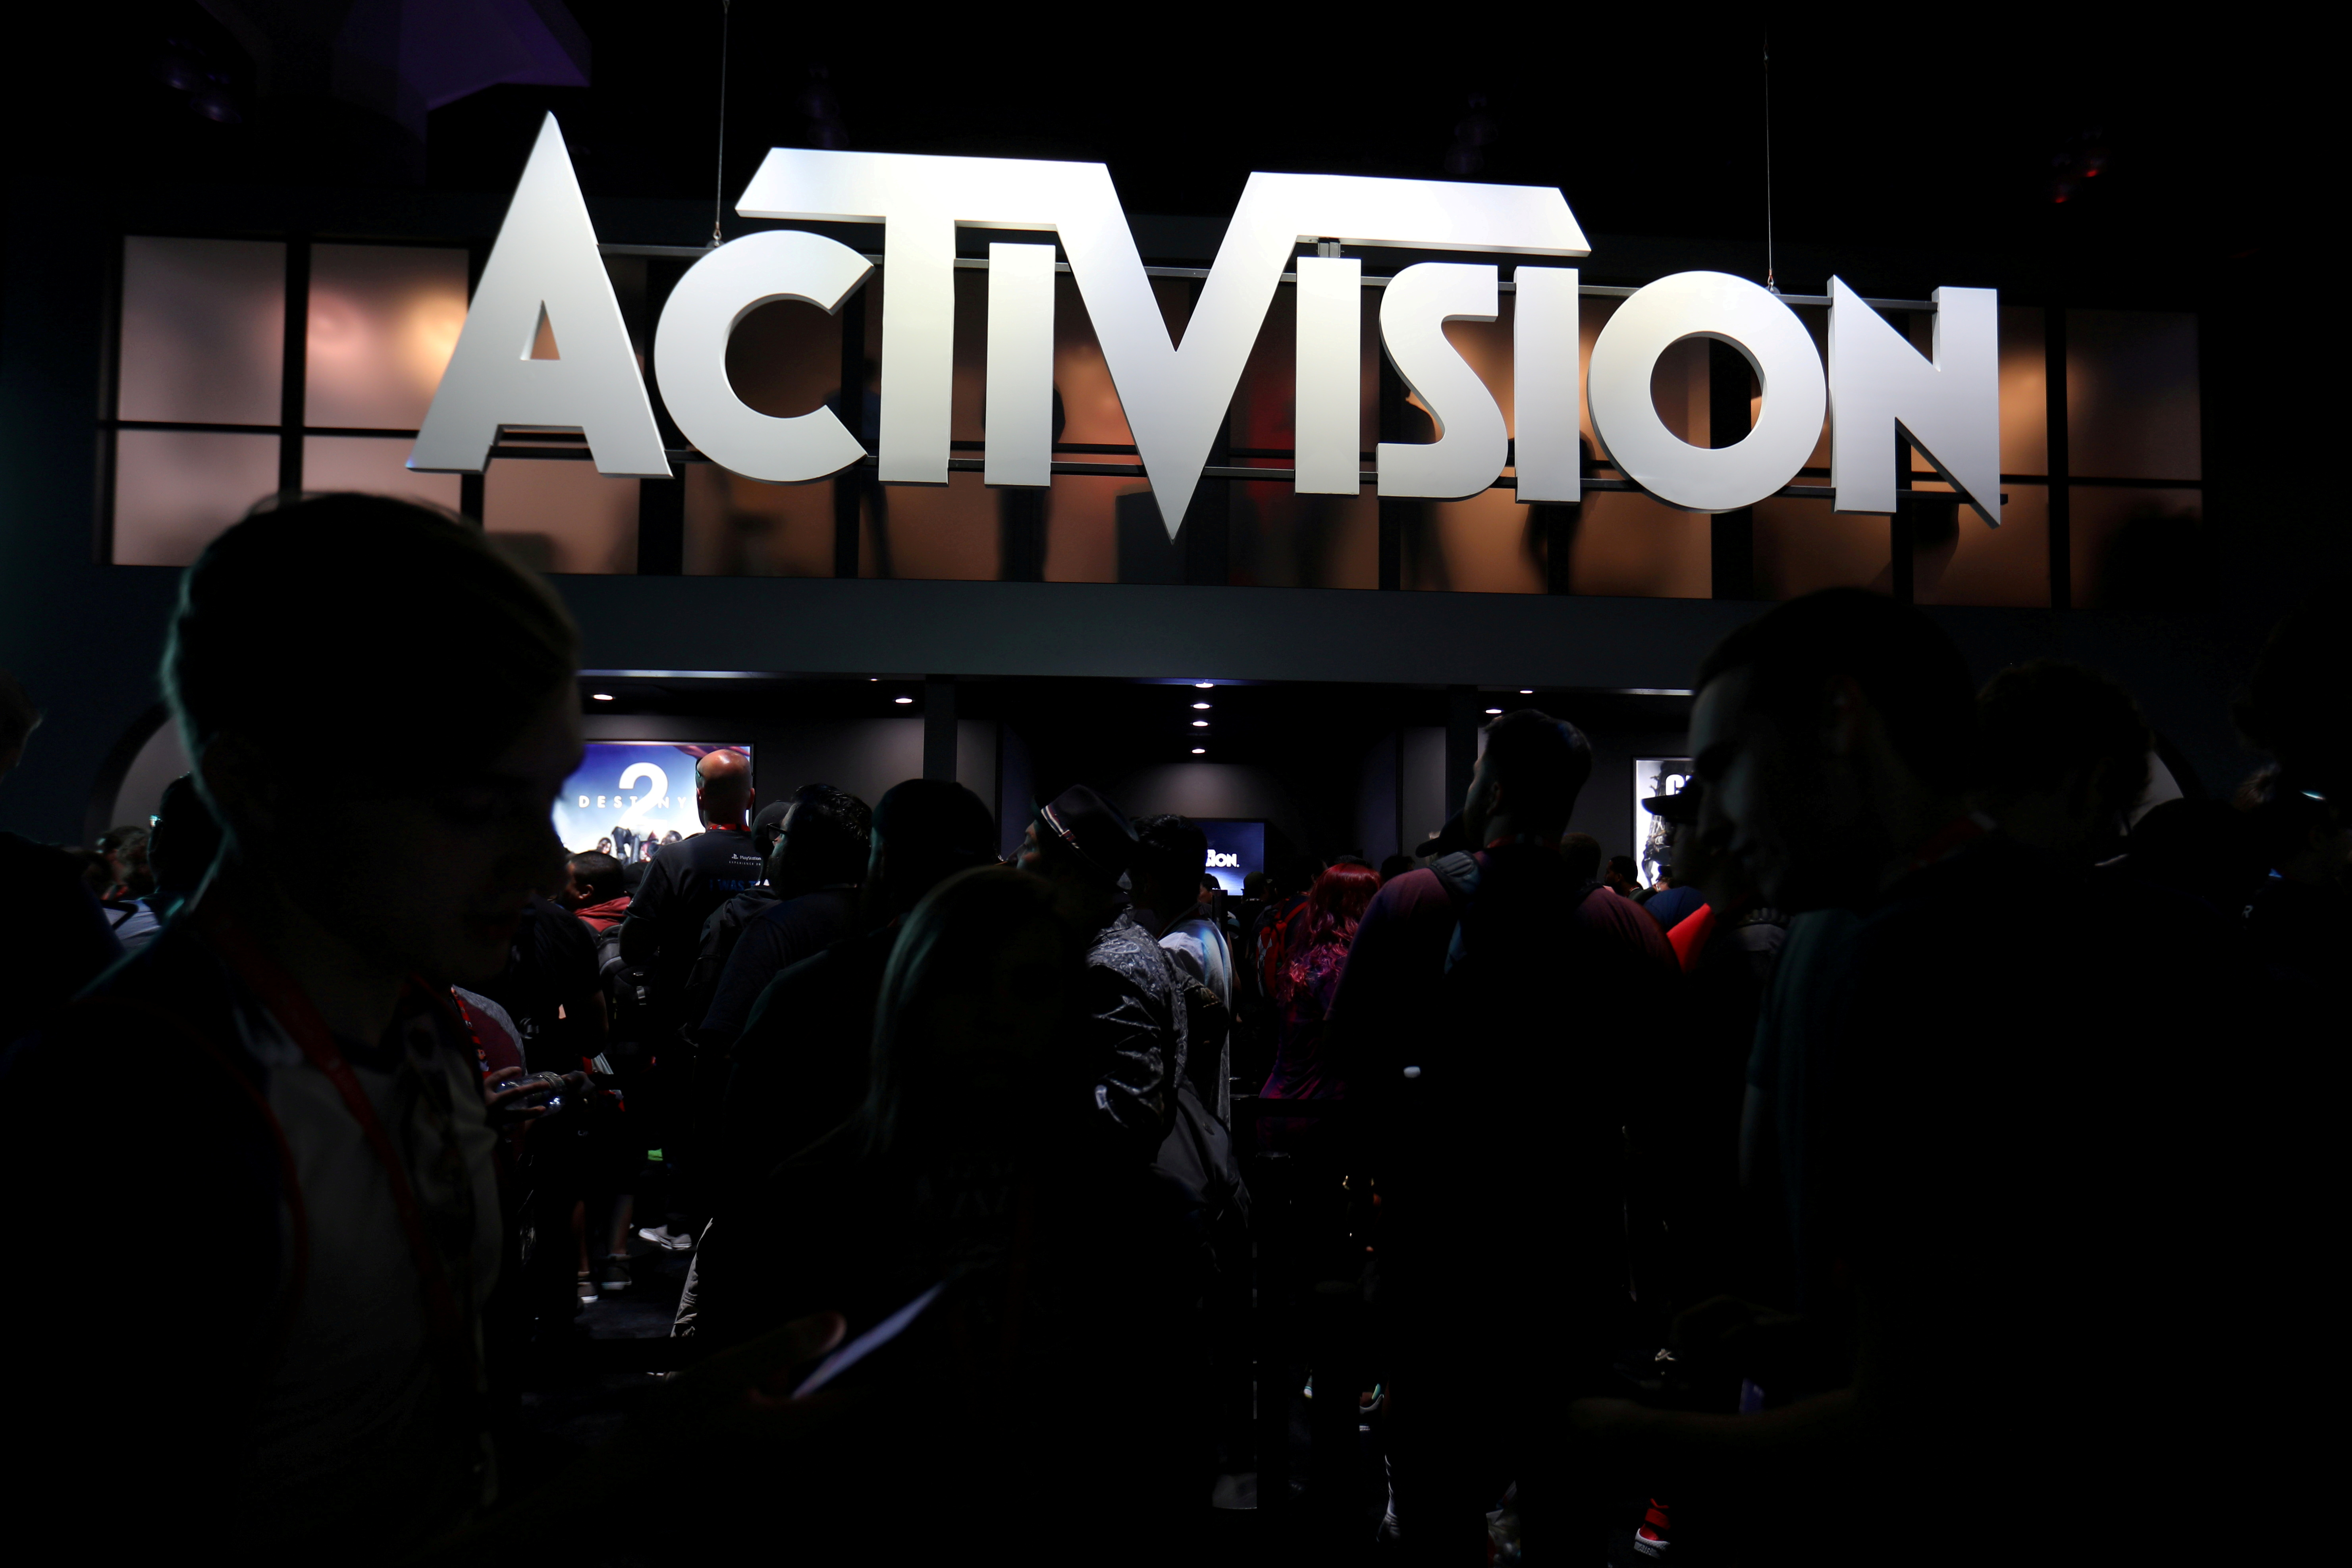 The Activision booth is shown at the E3 2017 Electronic Entertainment Expo in Los Angeles, California, U.S. June 13, 2017.  REUTERS/ Mike Blake/File Photo